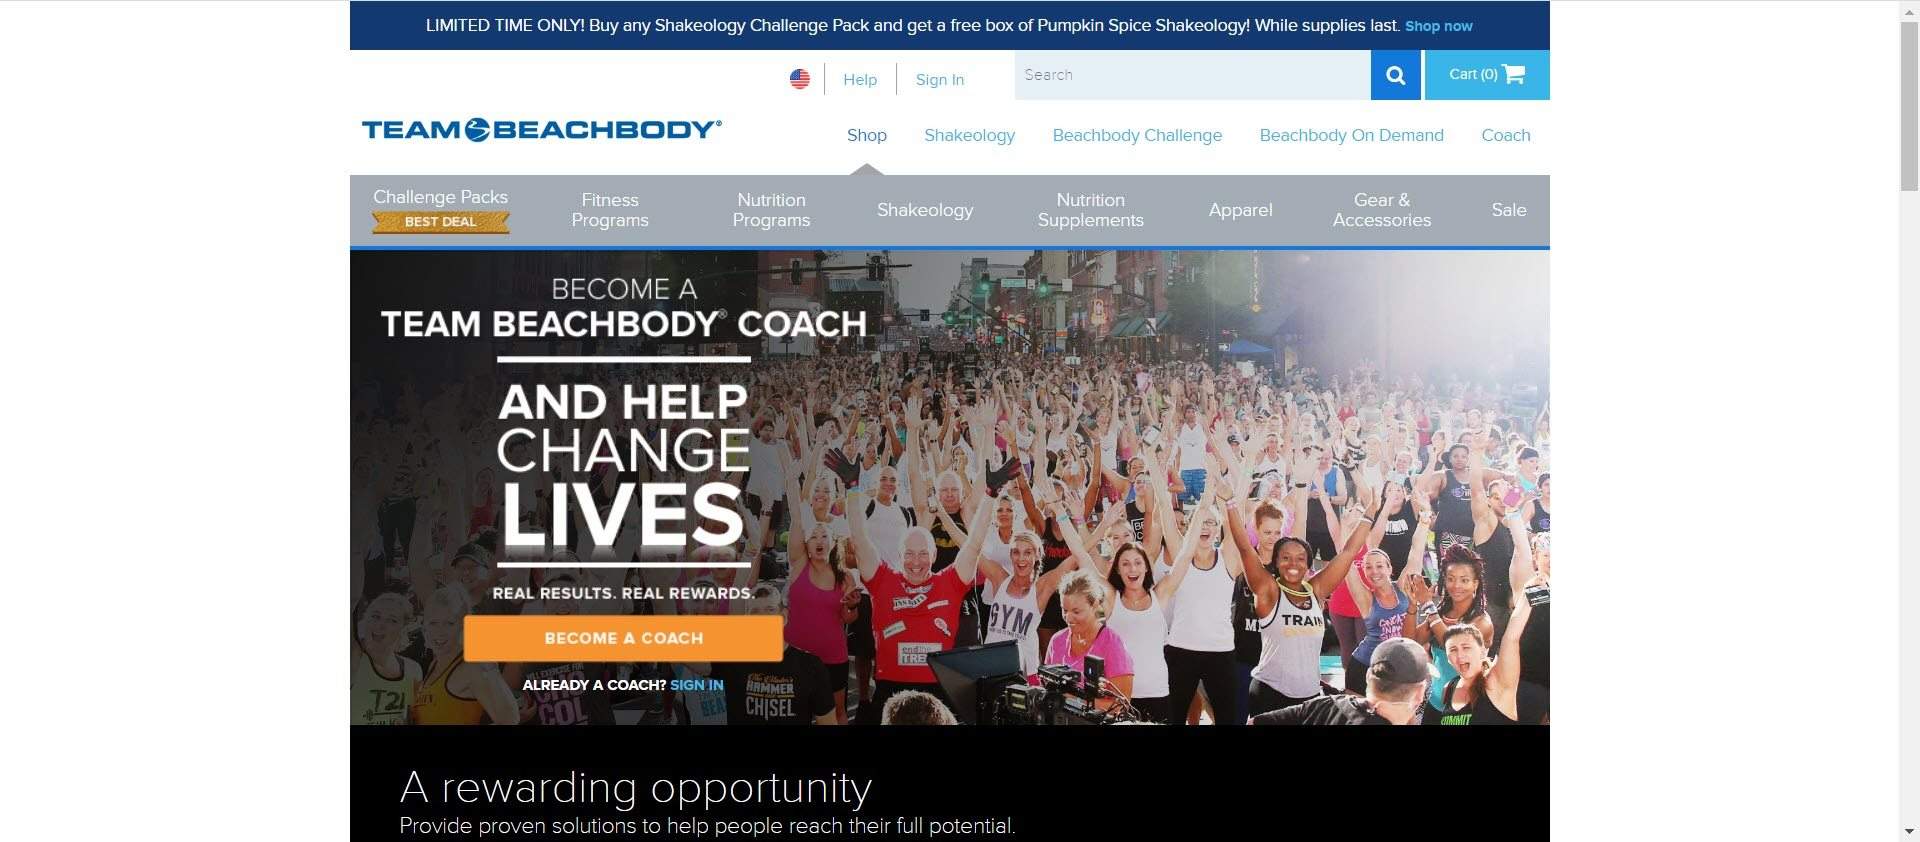 beachbody MLM review - Opportunity